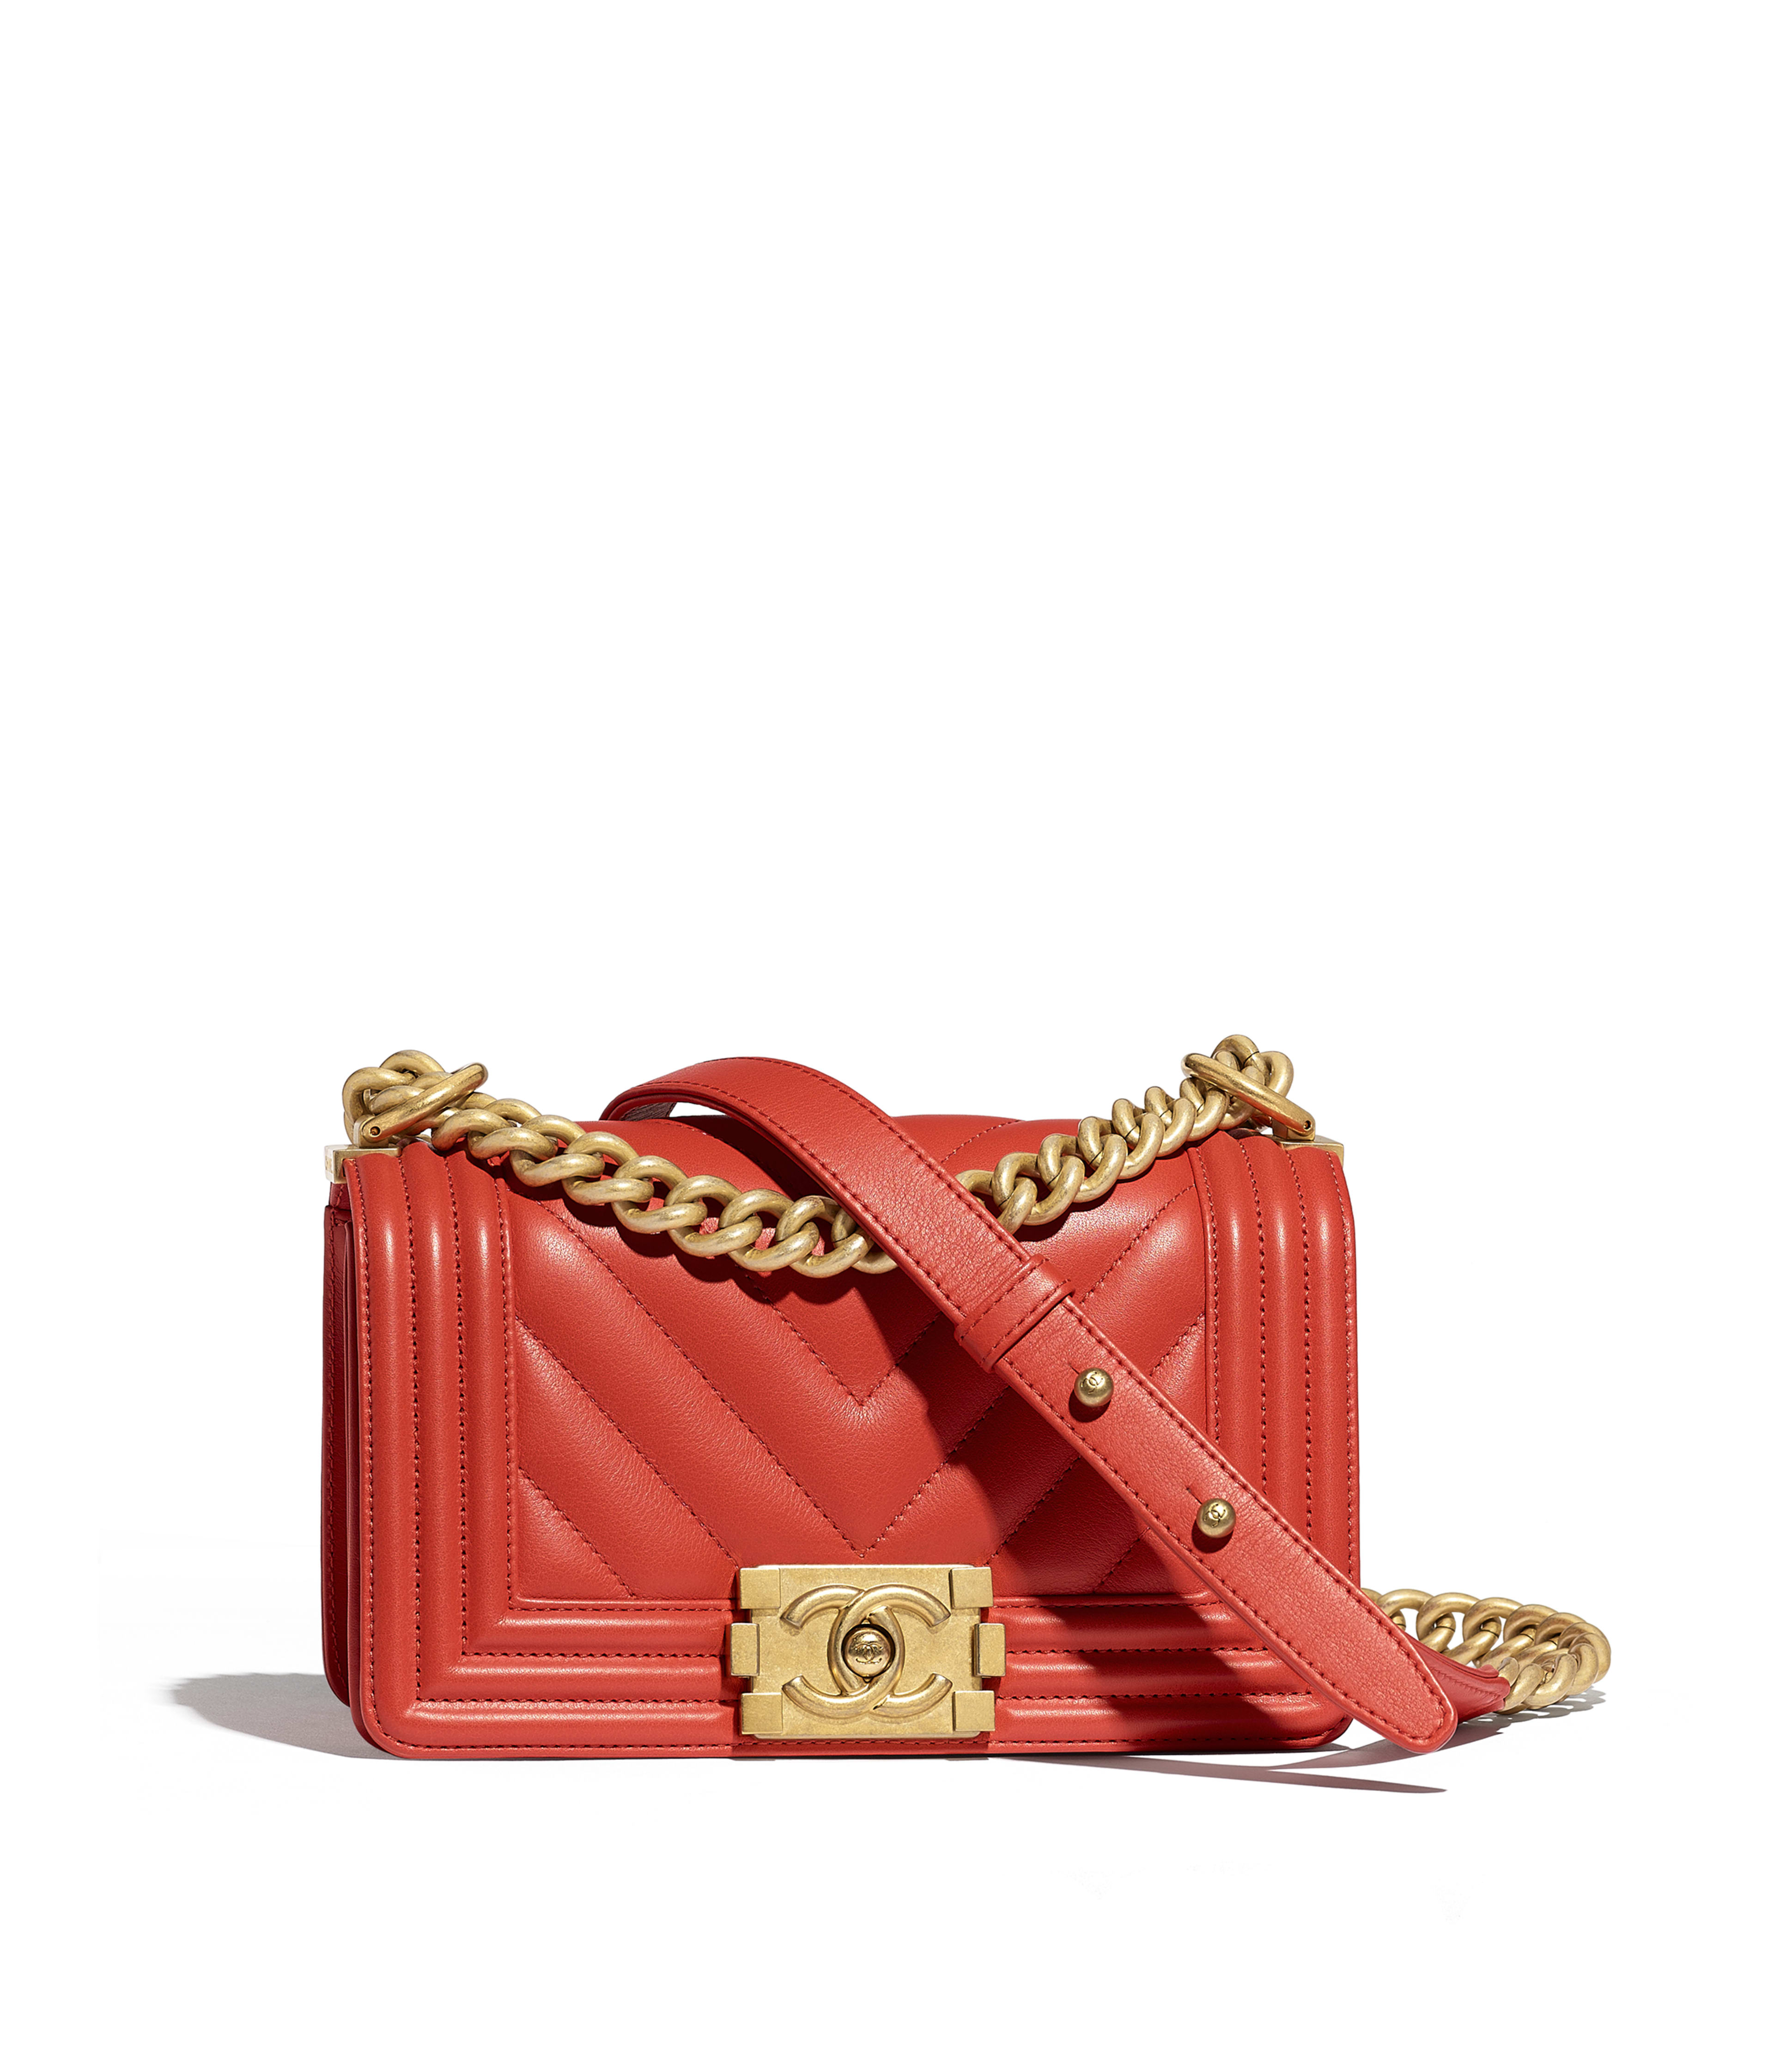 Small Boy Chanel Handbag Calfskin Gold Tone Metal Red Ref A67085y822665b651